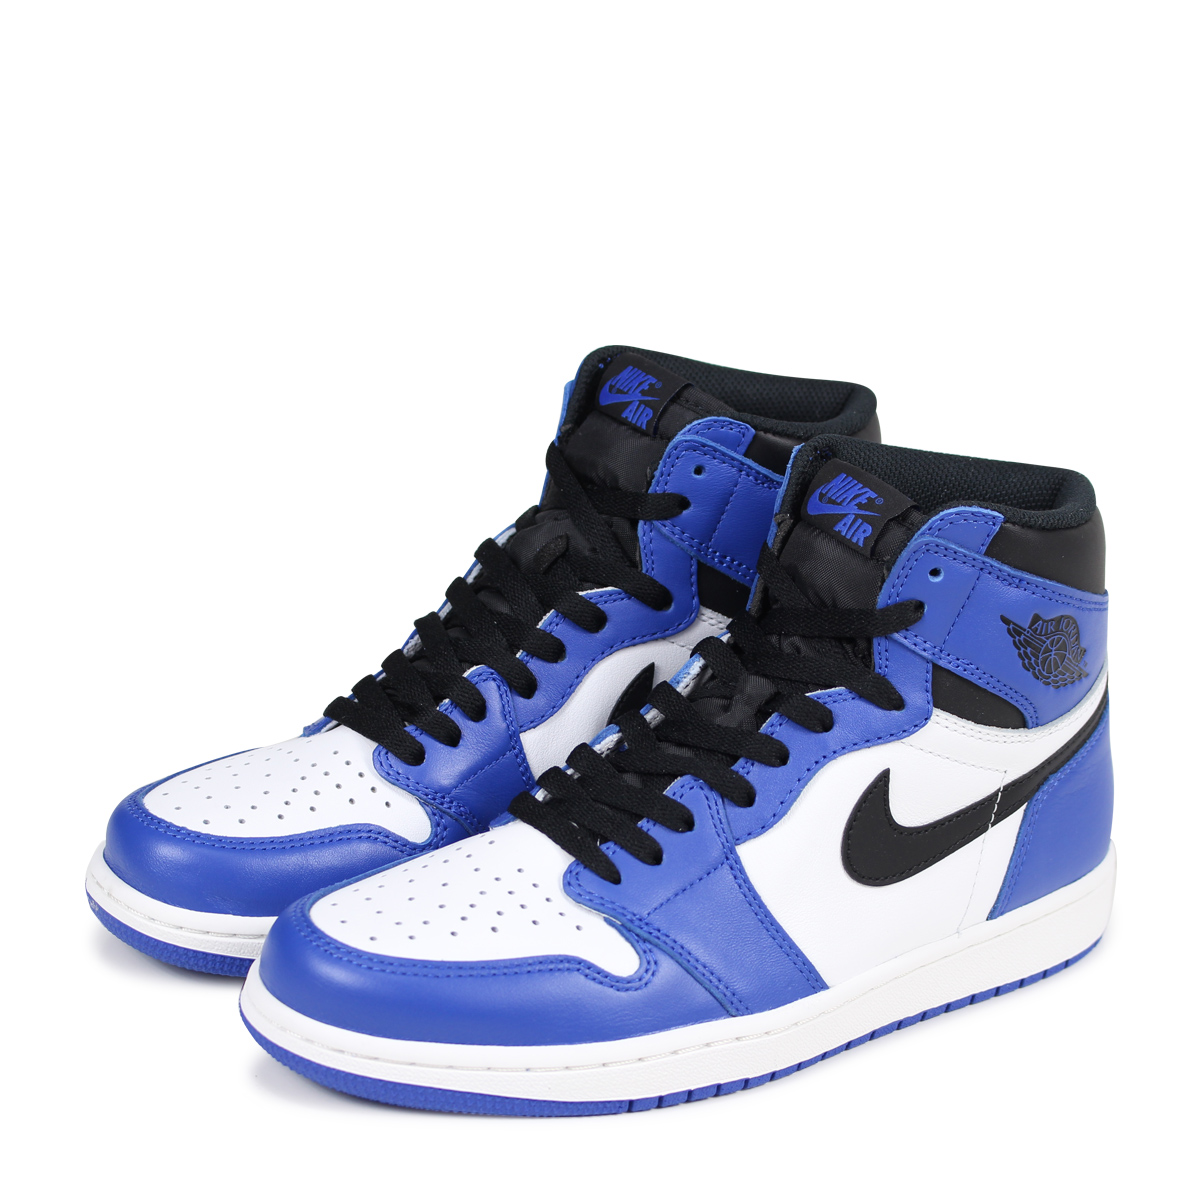 Nike Nike Air Jordan 1 Retro hi top sneakers Blue from Farfetch:Linkshare:Affiliate:CPA:US:US | Shop